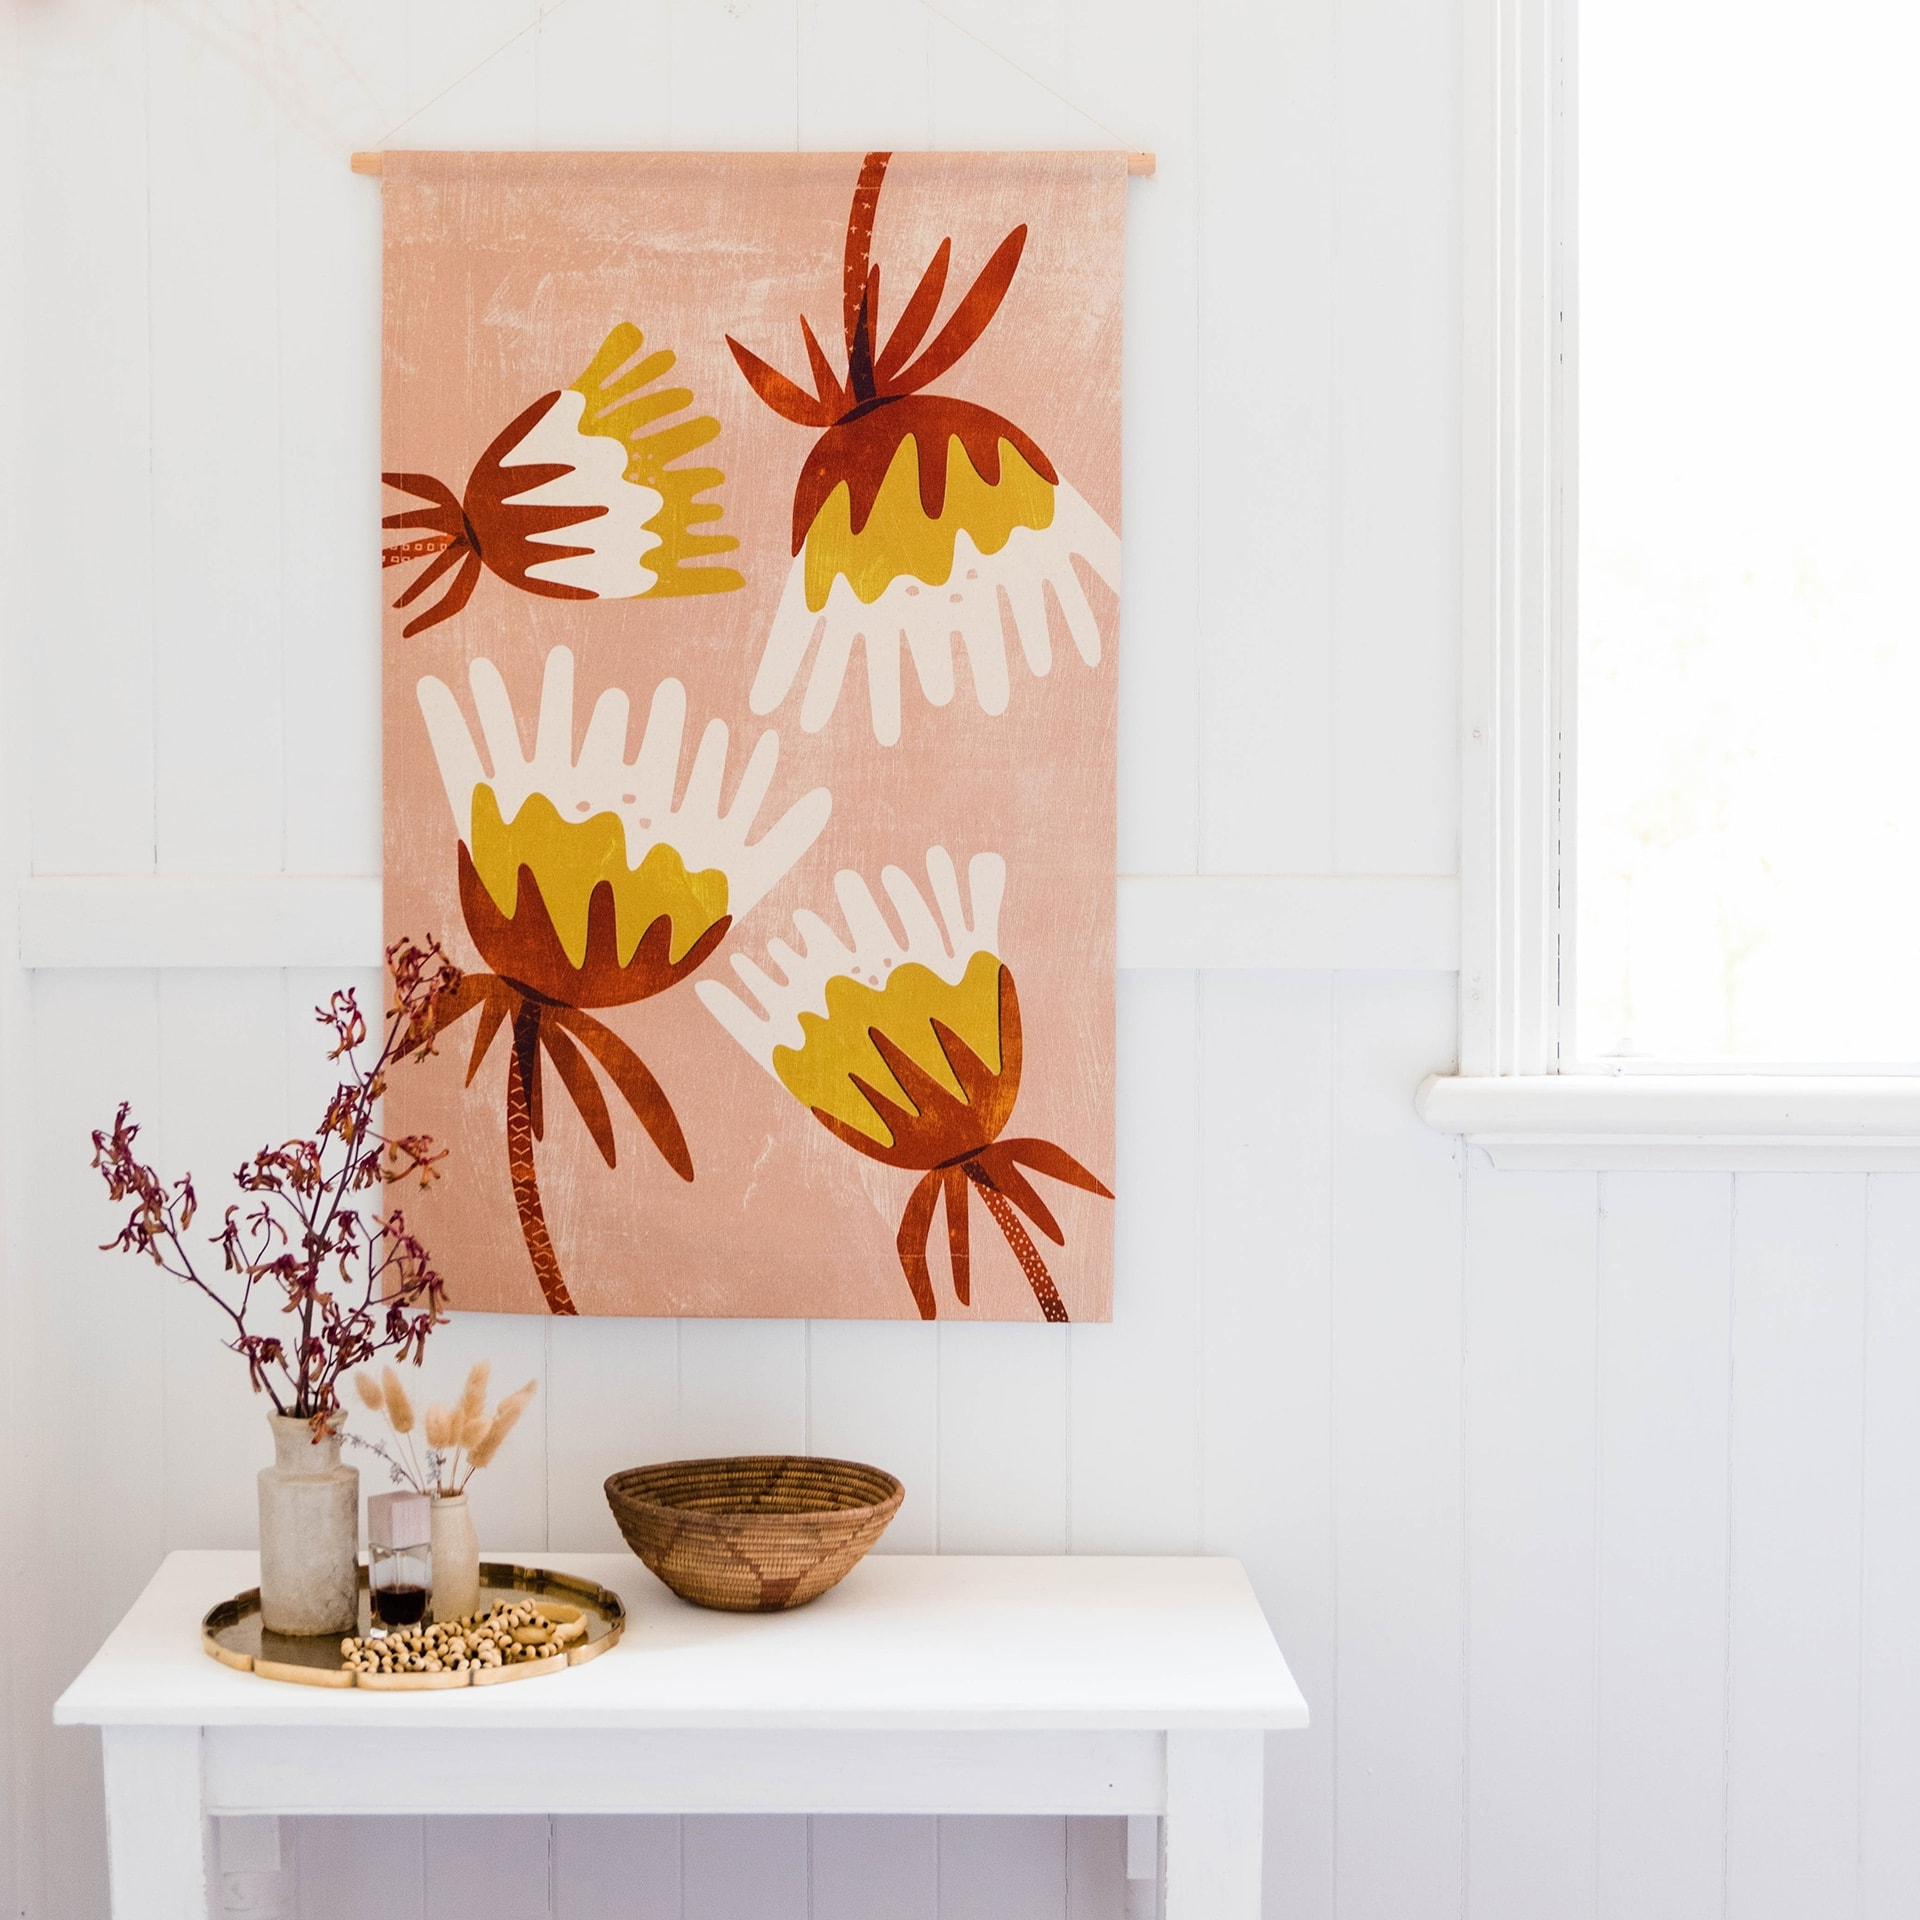 Fabric Wall Hangings Trend & Where To Shop It – Tlc Interiors Intended For Favorite Blended Fabric Poppy Red Wall Hangings (View 9 of 20)